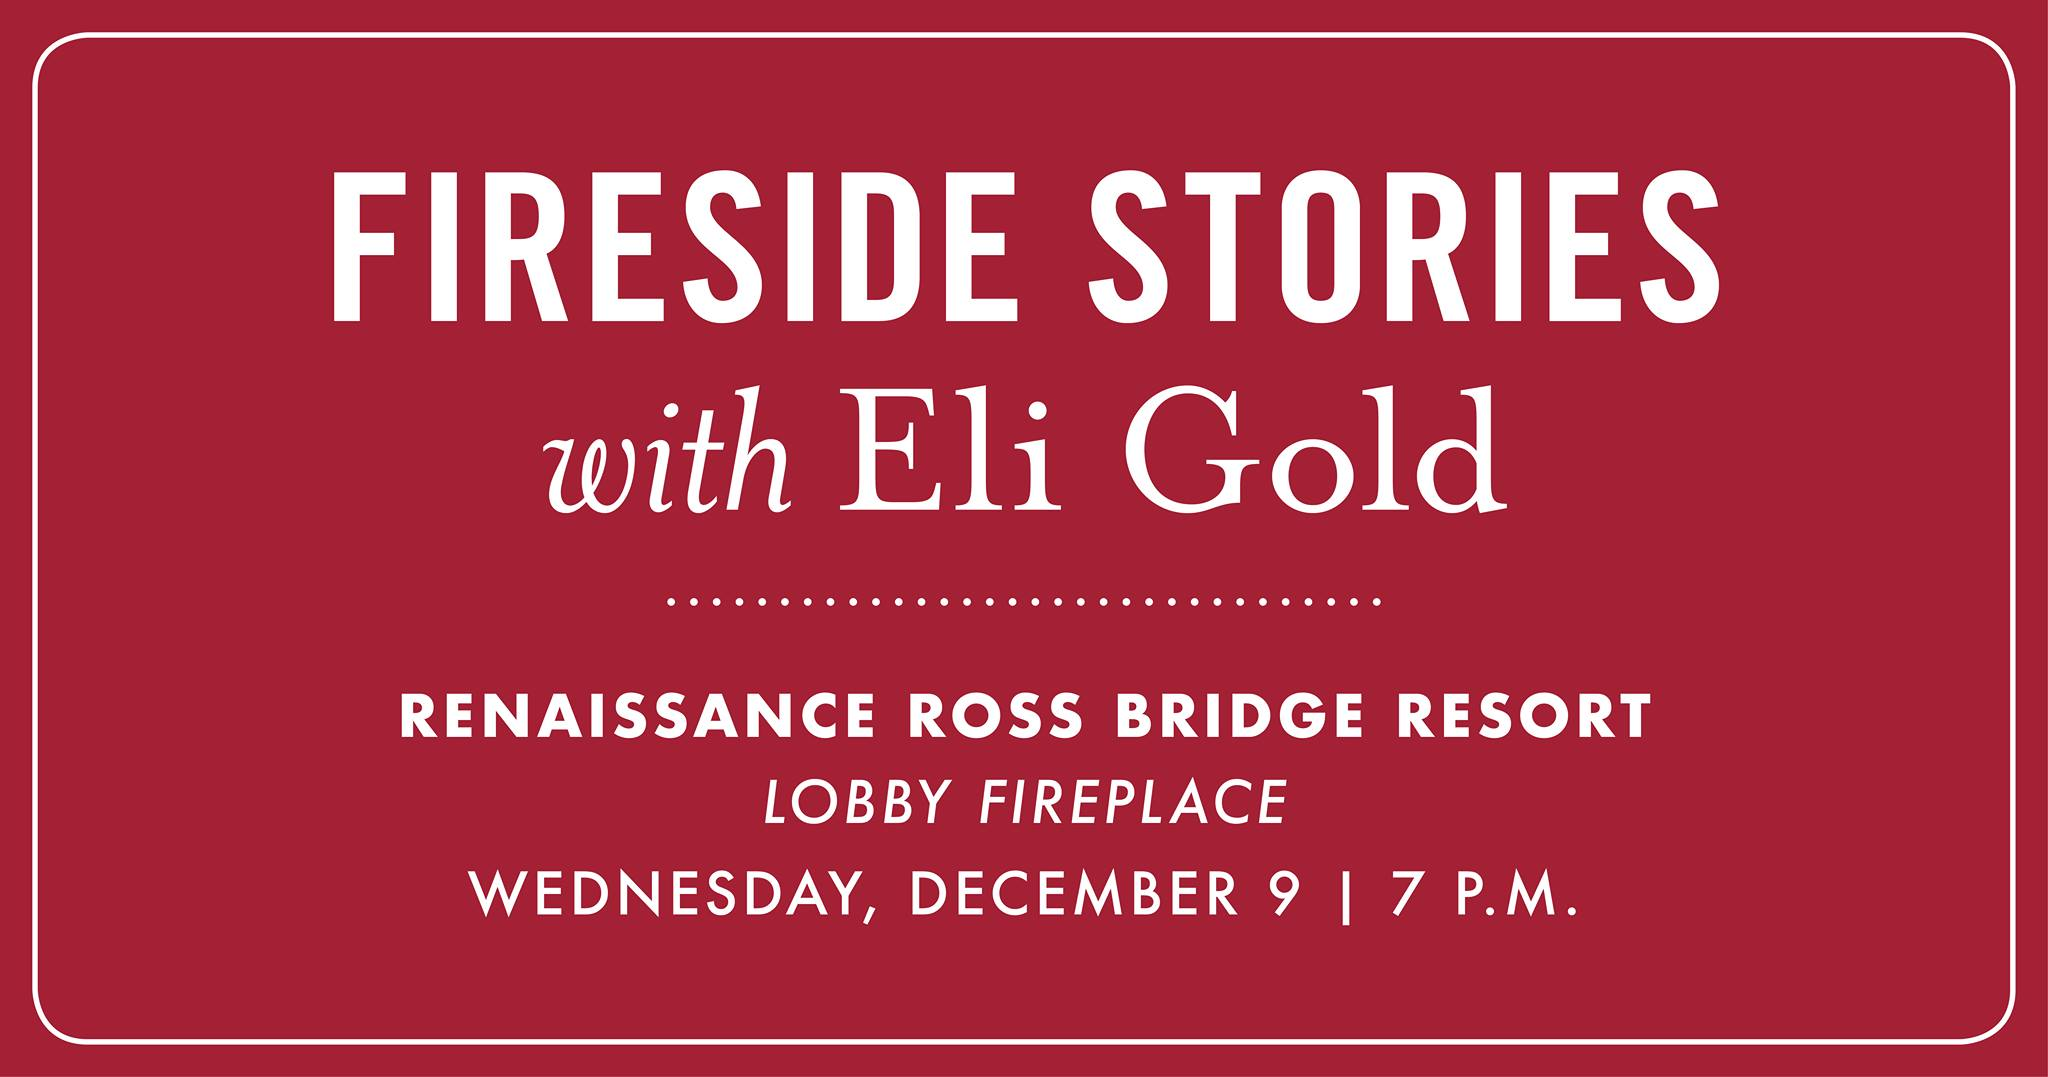 Come hear Fireside Stories told by Eli Gold for FREE